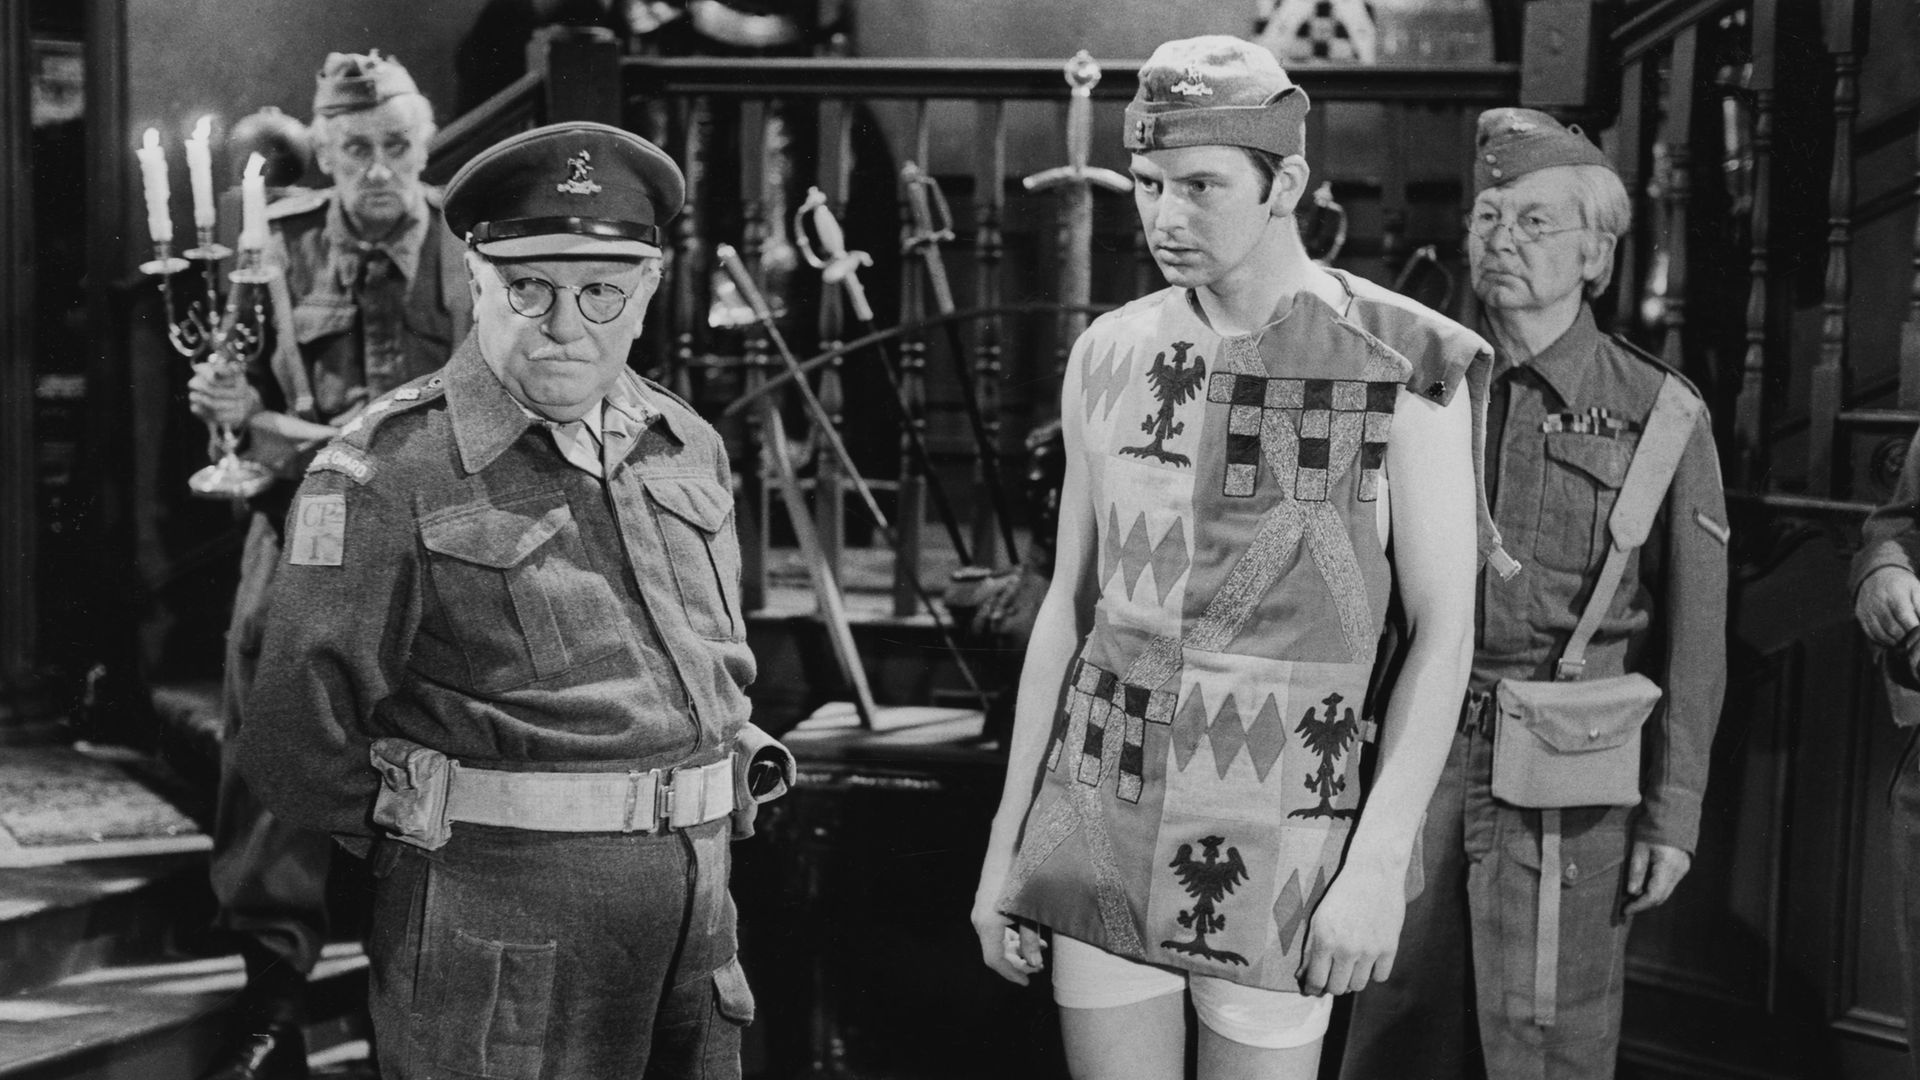 From left: John Laurie (behind), Arthur Lowe, Ian Lavender and Clive Dunn in a scene from the Dad's Army episode Things That Go Bump in the Night, from 1973 - Credit: Getty Images